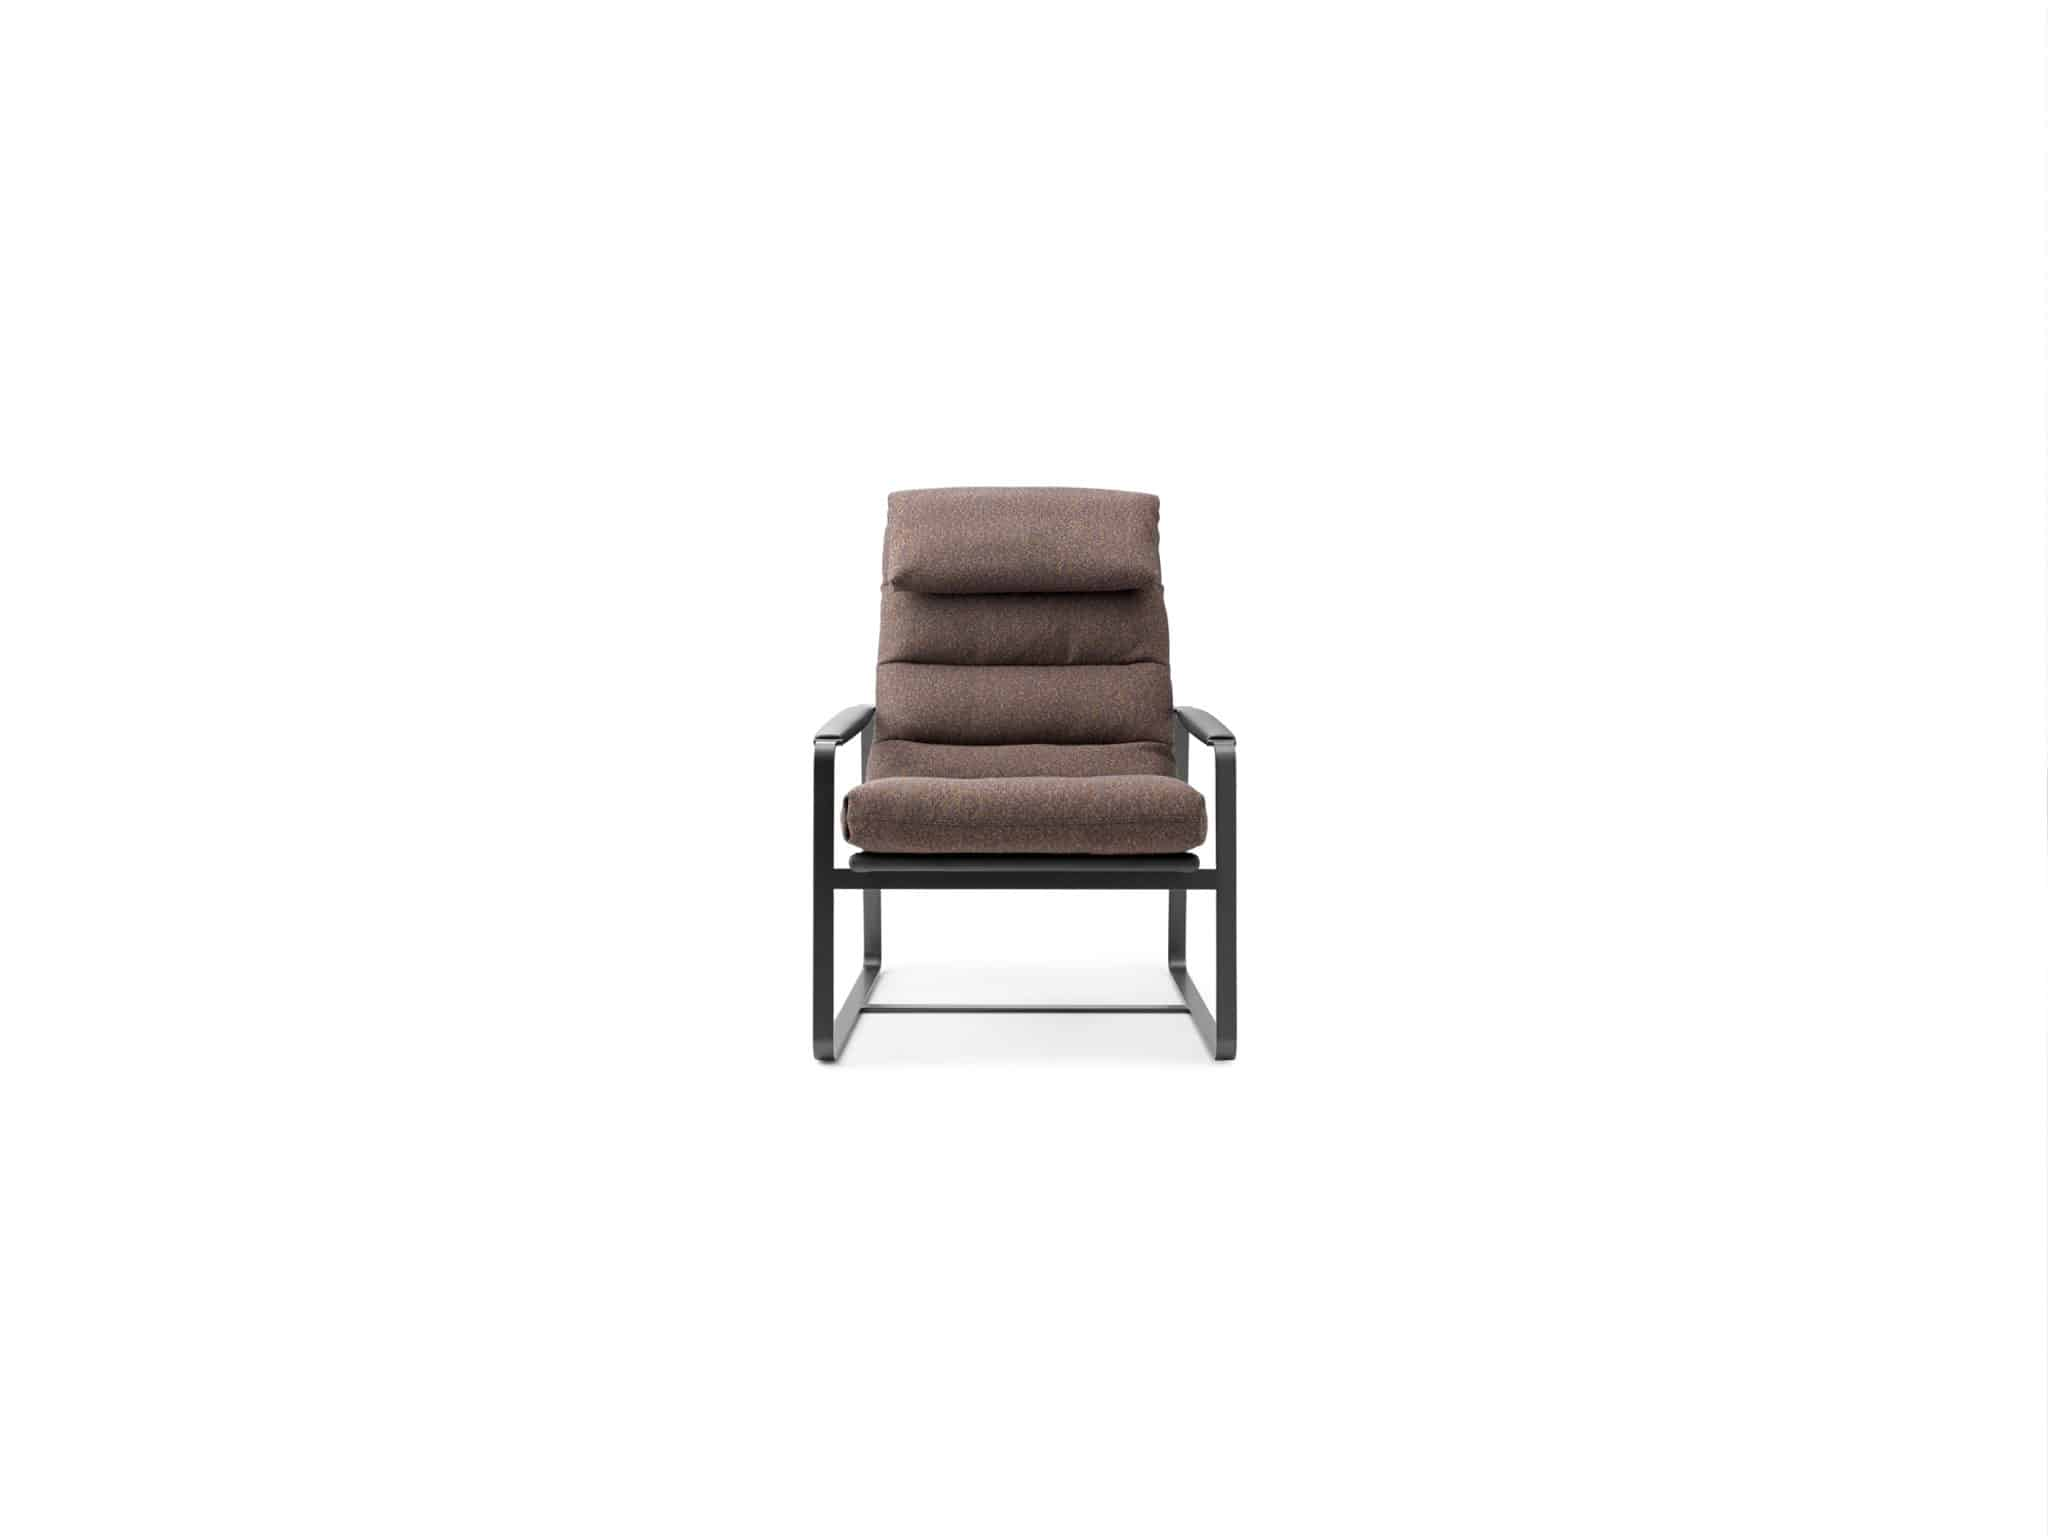 Leolux fauteuil Indra pa